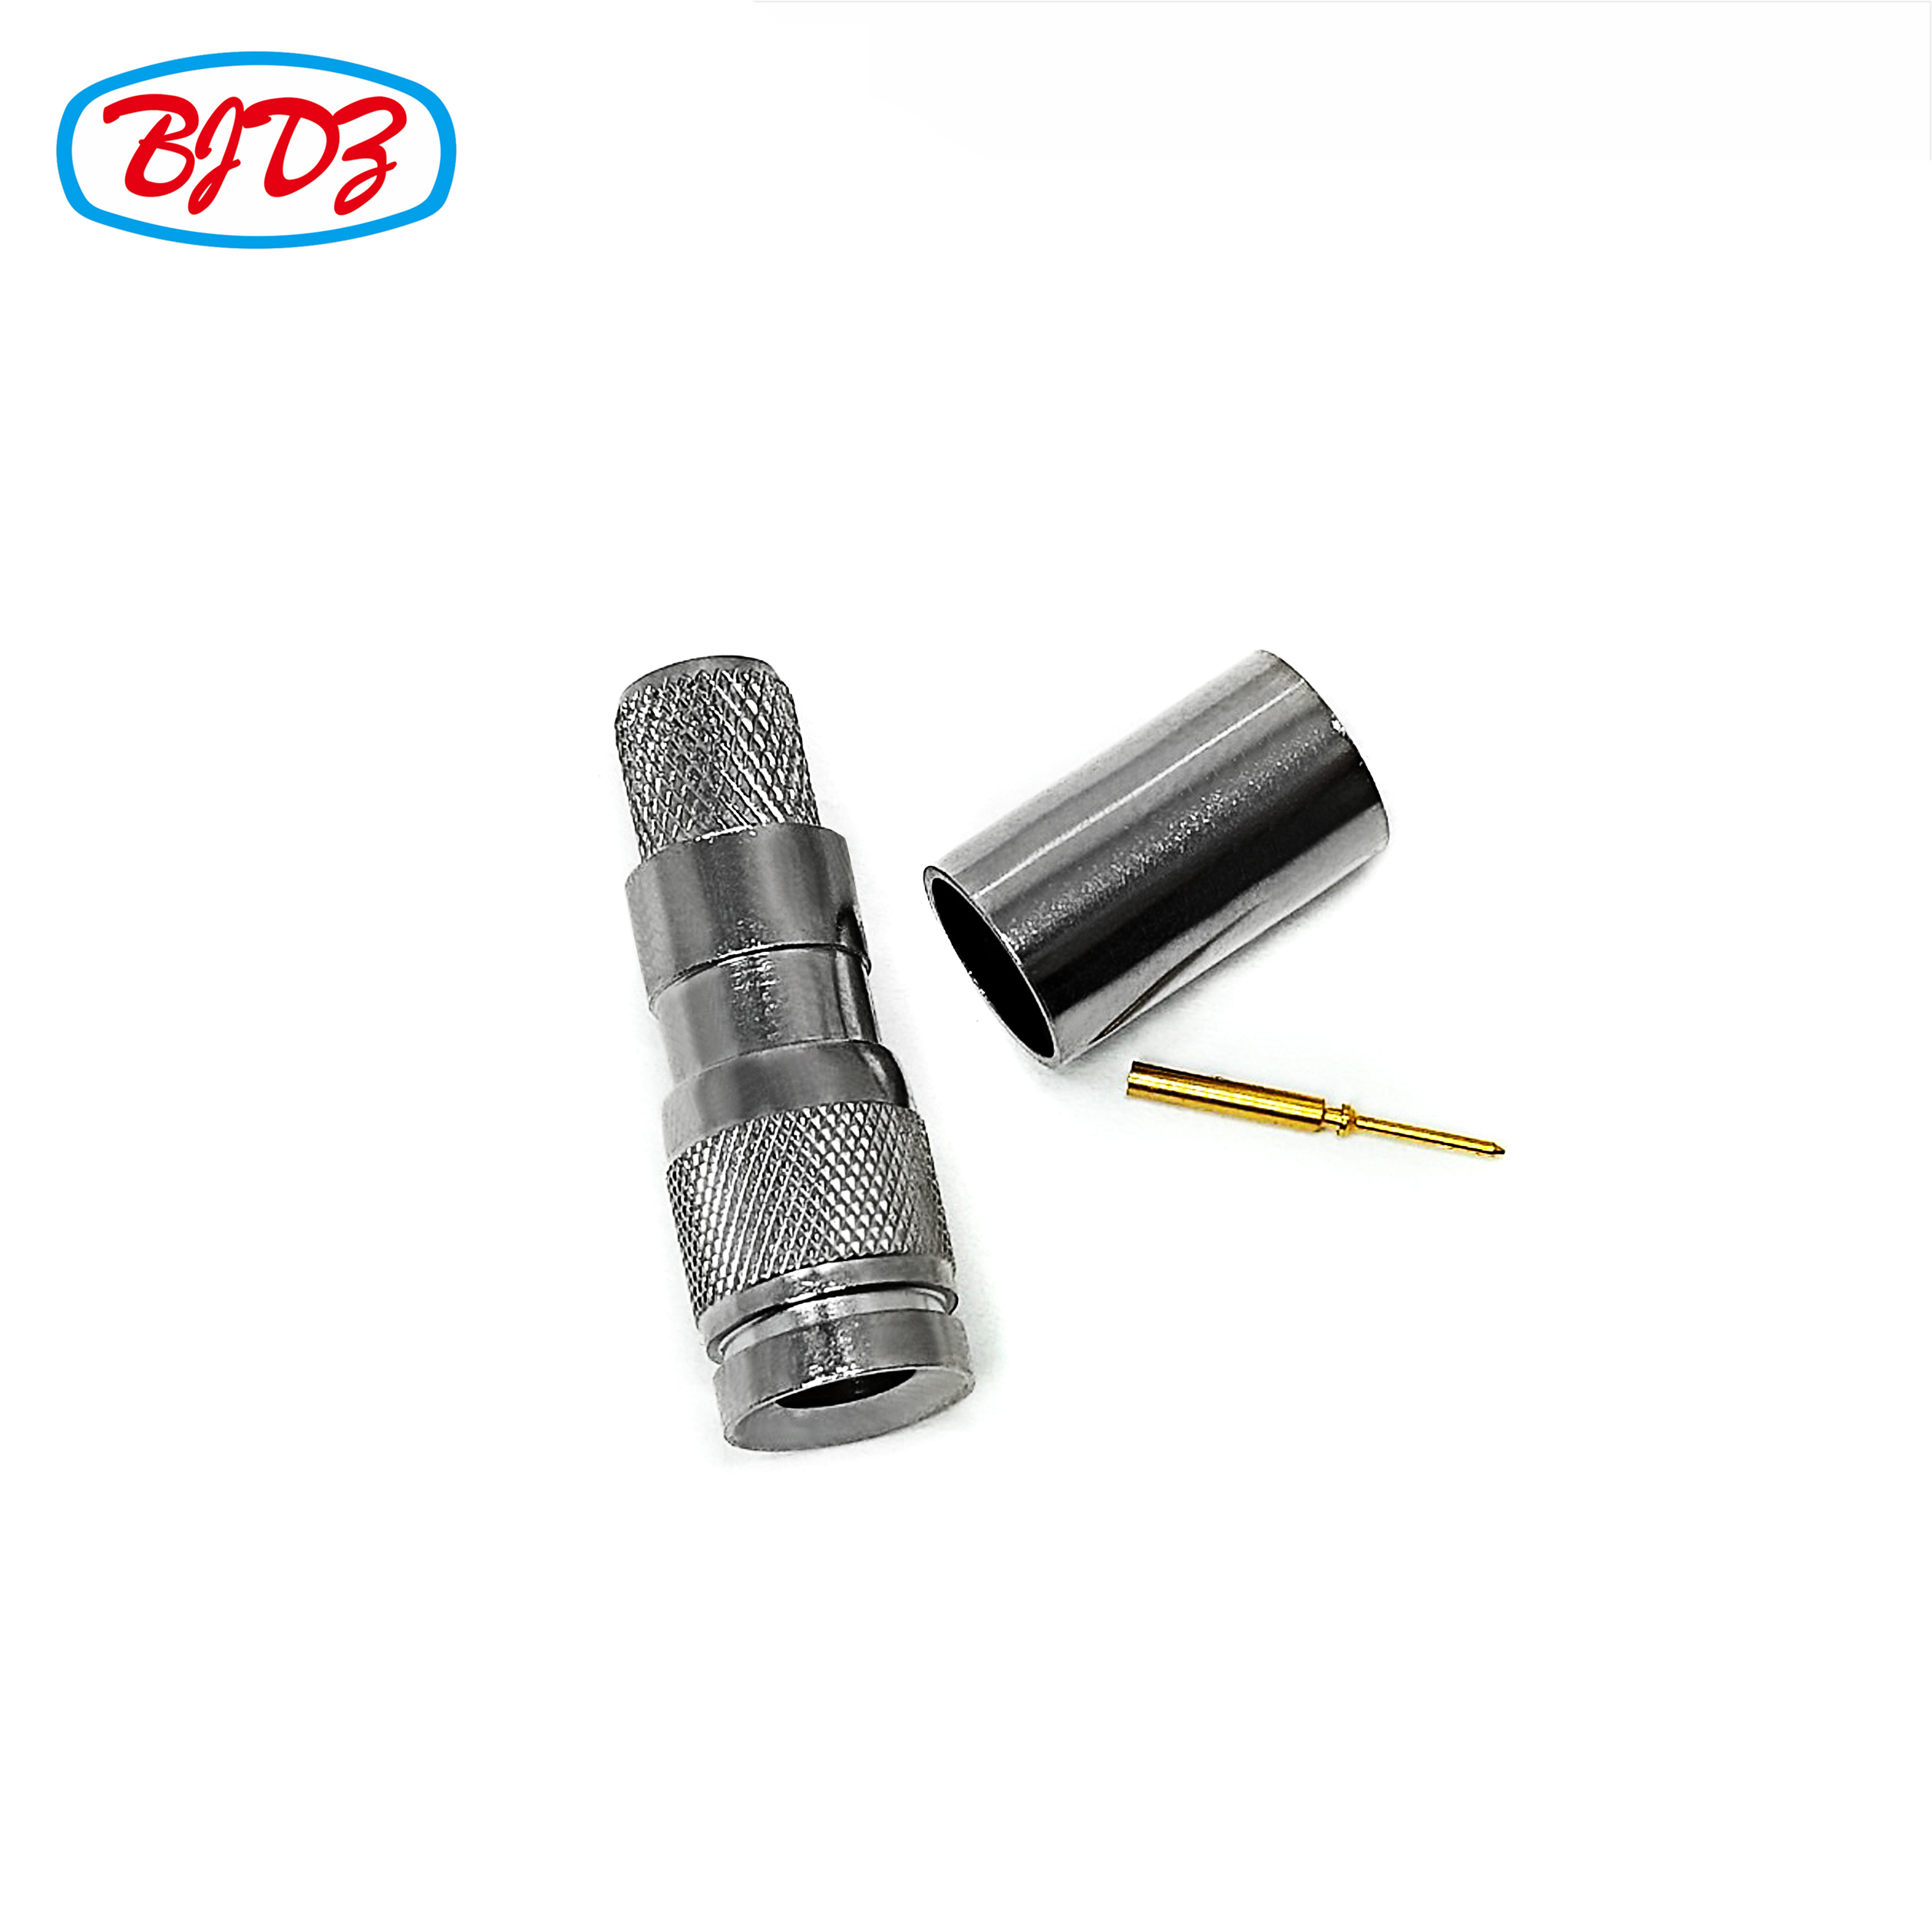 Precision Connector CC4 SAA Din 1.0/2.3 Male Plug Connector Crimp For RG59 Cable Pigtail Connector